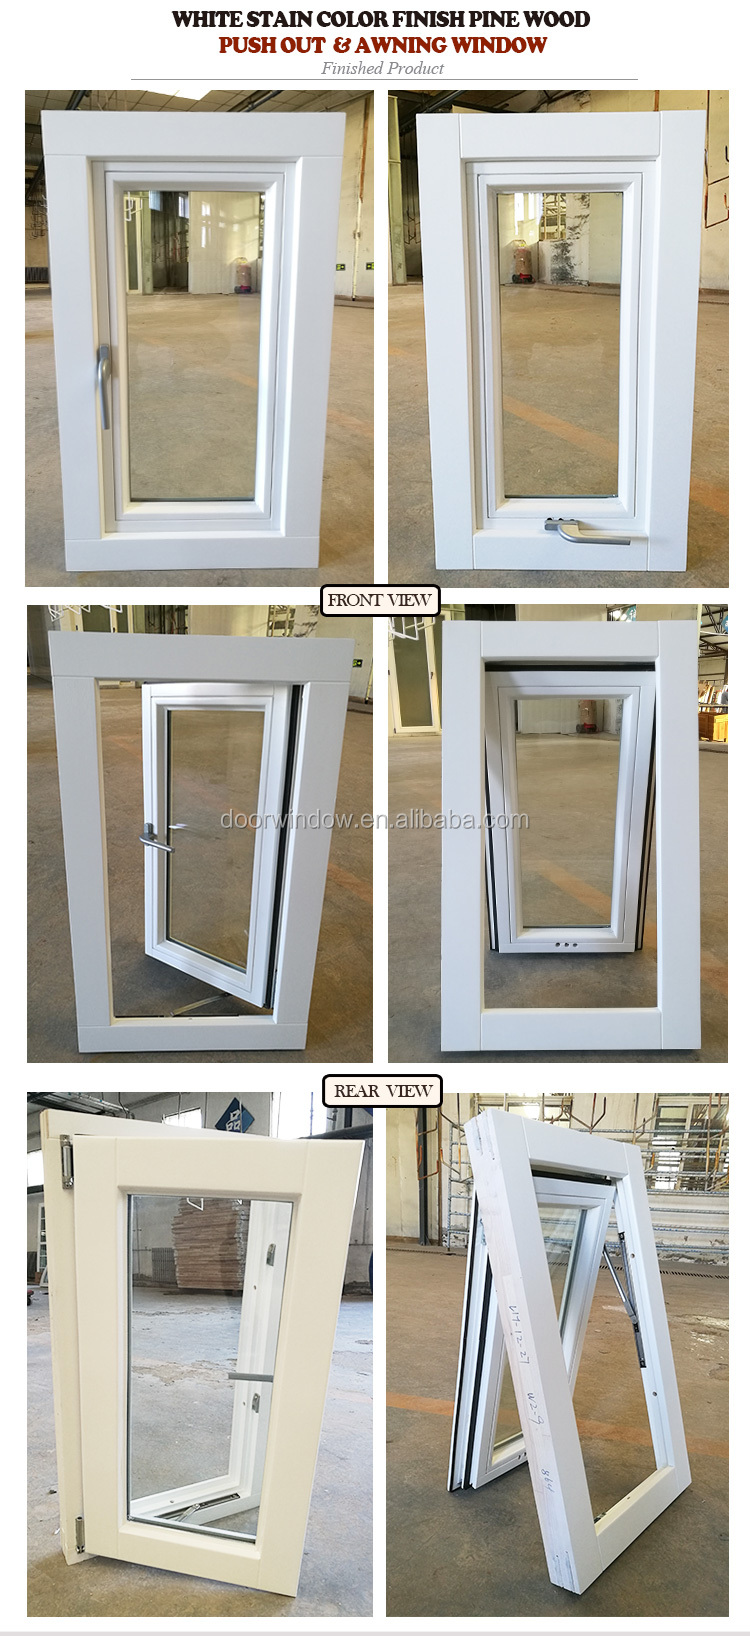 Las Vegas contemporary china made american wooden style windows best wood windows for the money